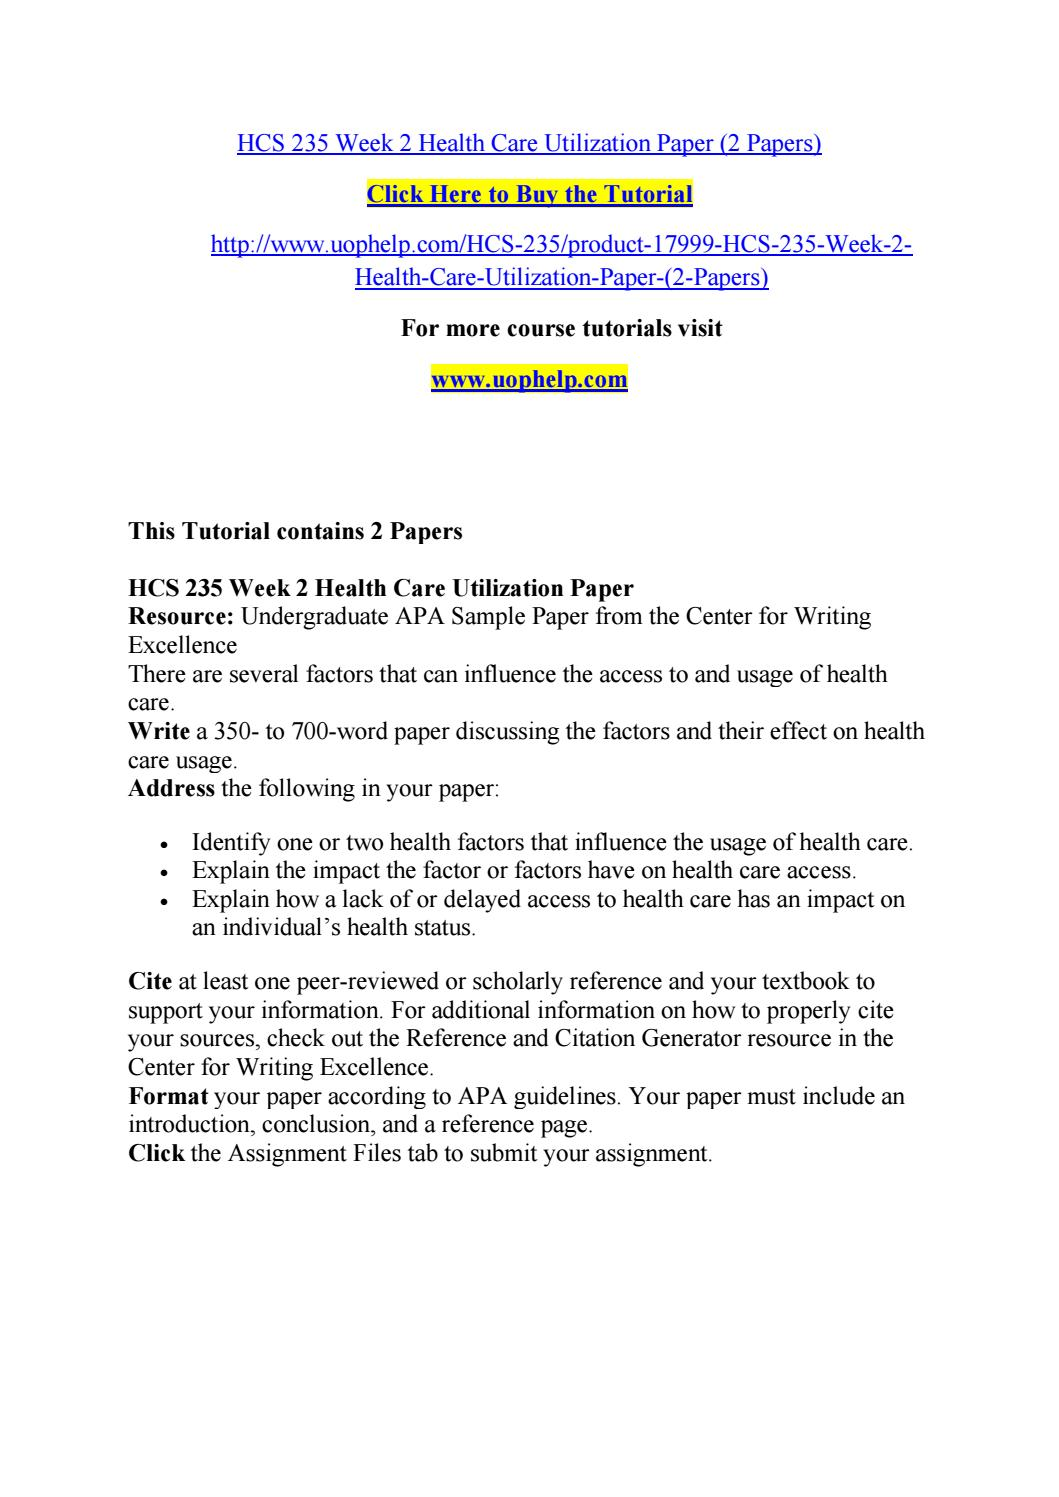 hcs 235 healthcare utilization paper This tutorial contains 2 papers  hcs 235 week 3 health care providers and products resource: undergraduate apa sample paper from the center for writing excellence select two health care service providers.